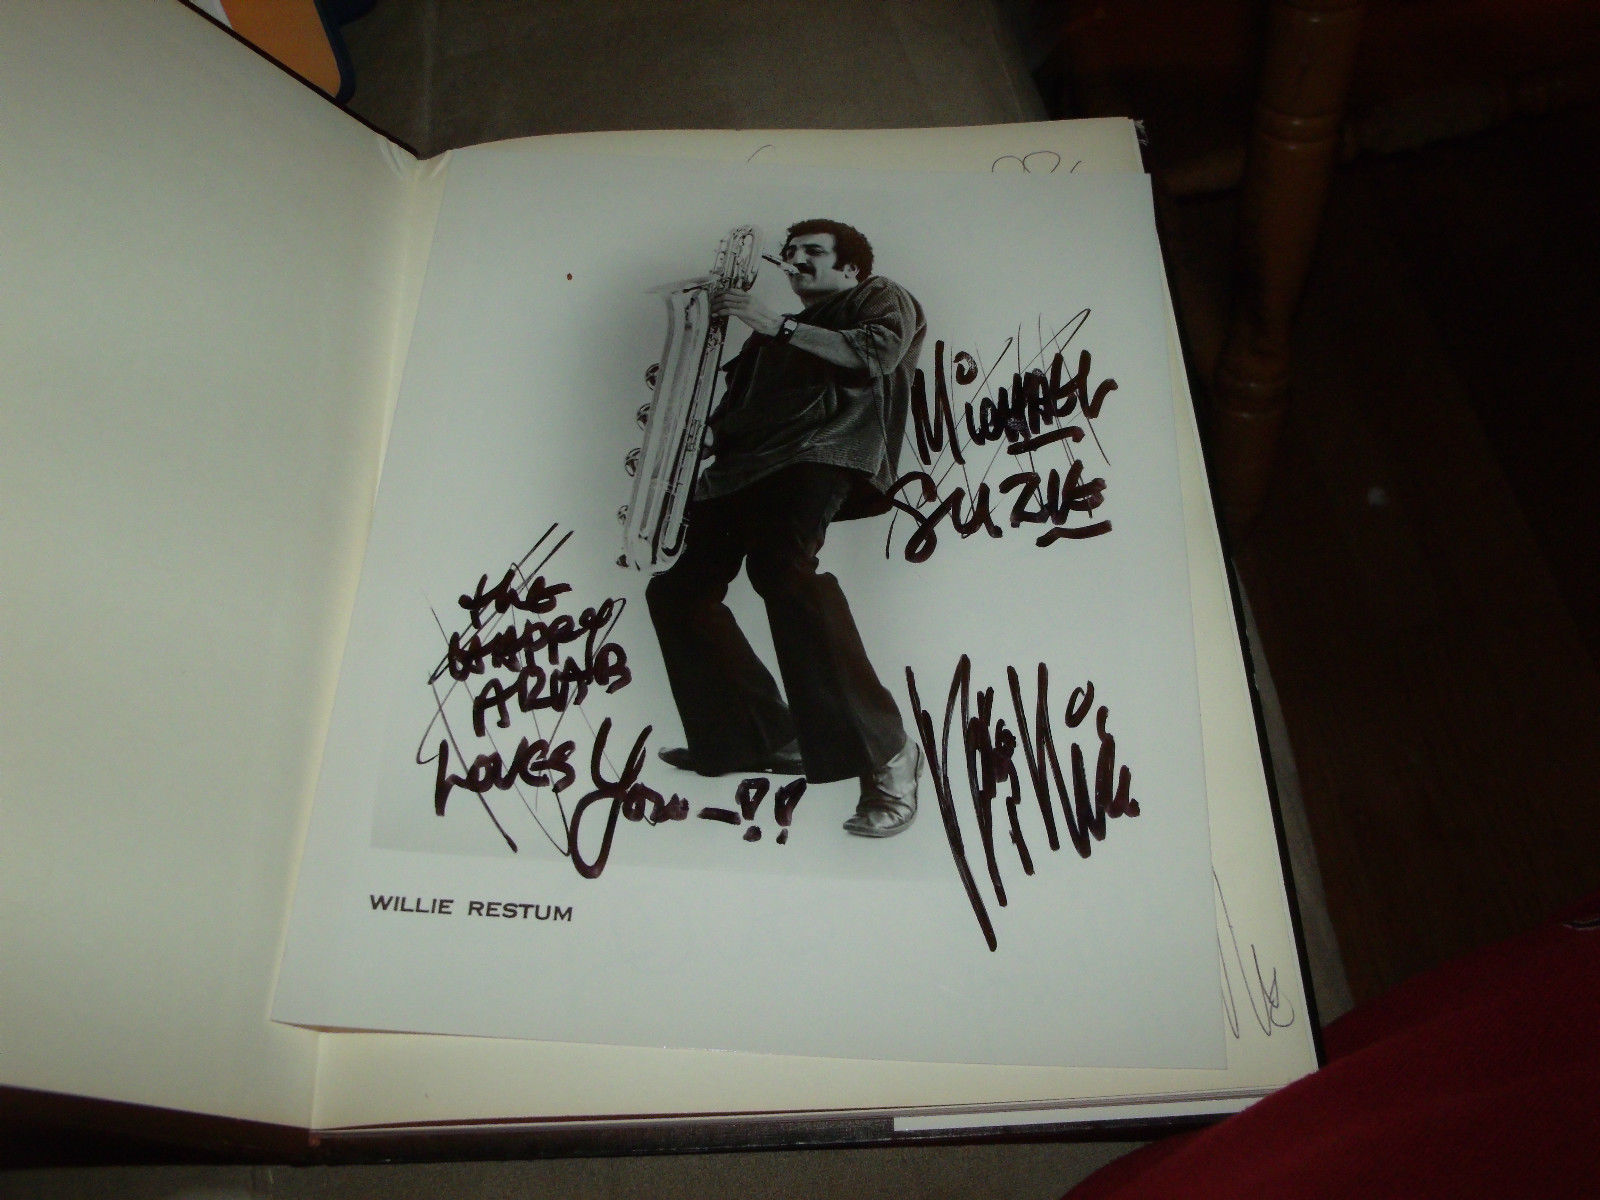 THEY ALL CAME TO SEE ME SIGNED BY WILLIE RESTUM 1ST EDITION SCARCE + SIGNED 8X10